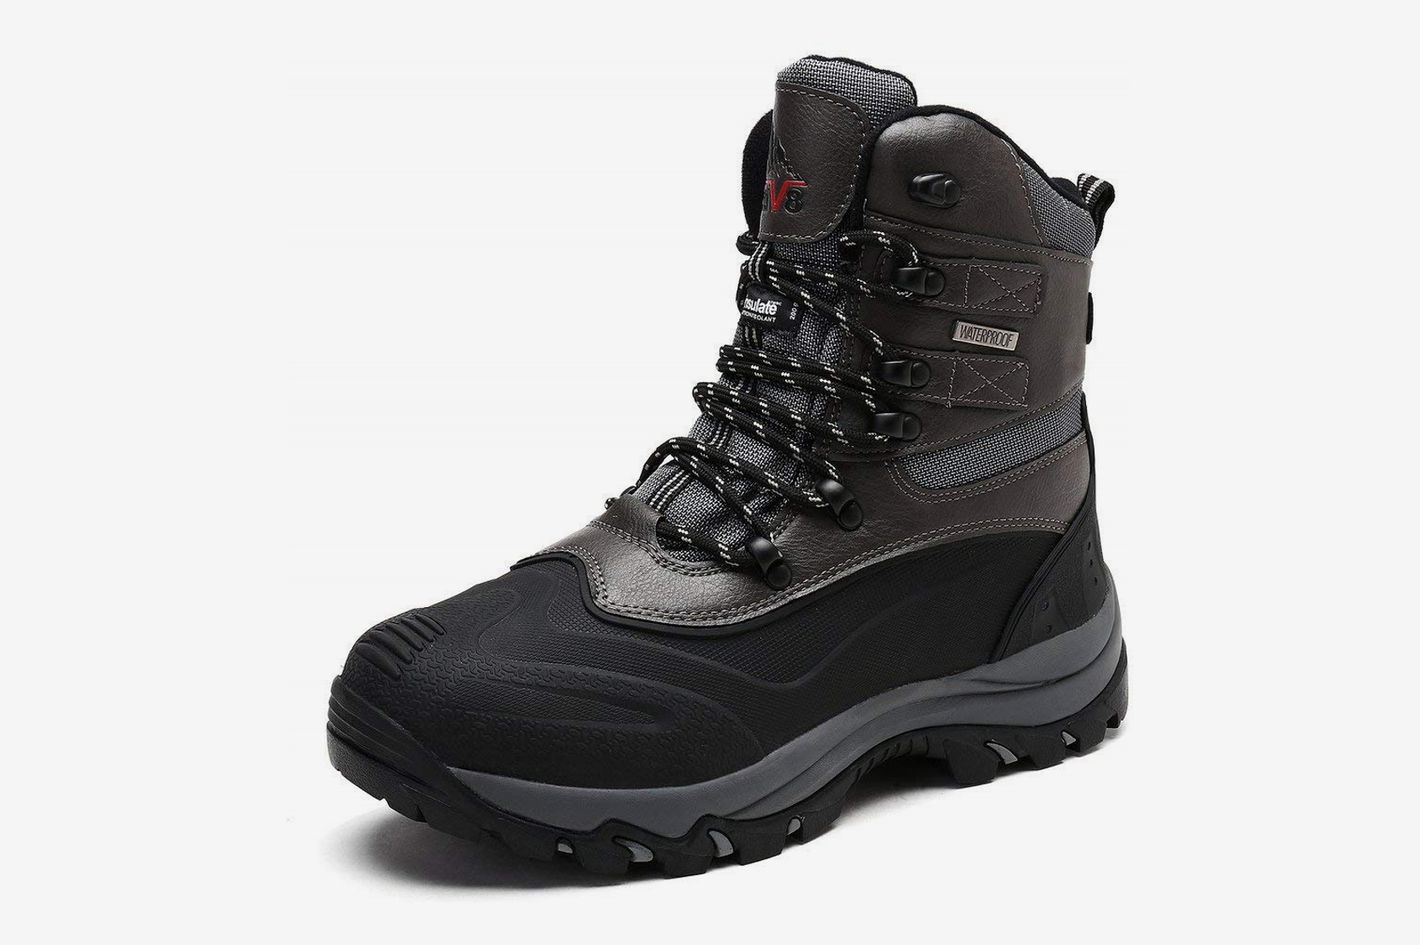 a441dd3858c Arctiv8 Men s Insulated Waterproof Construction Rubber Sole Winter Snow  Boots